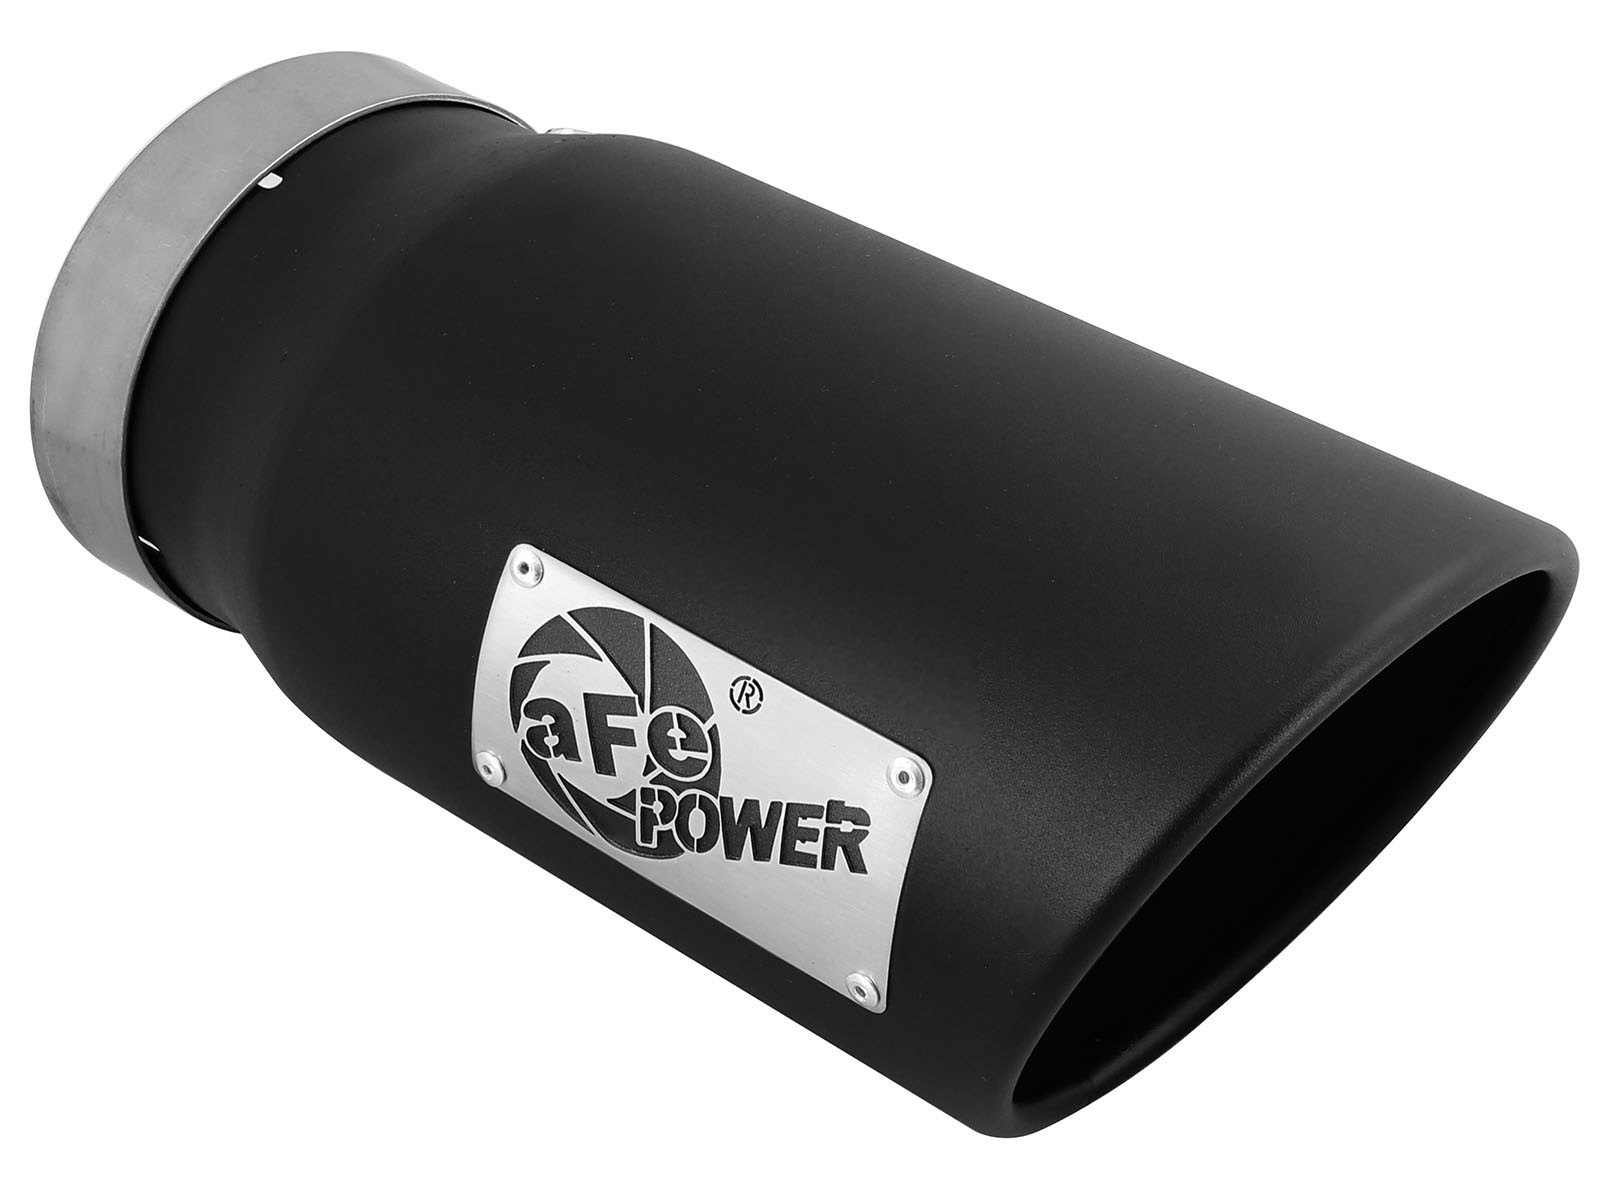 "aFe POWER 49T50601-B12 MACH Force-Xp 5"" 304 Stainless Steel Exhaust Tip"